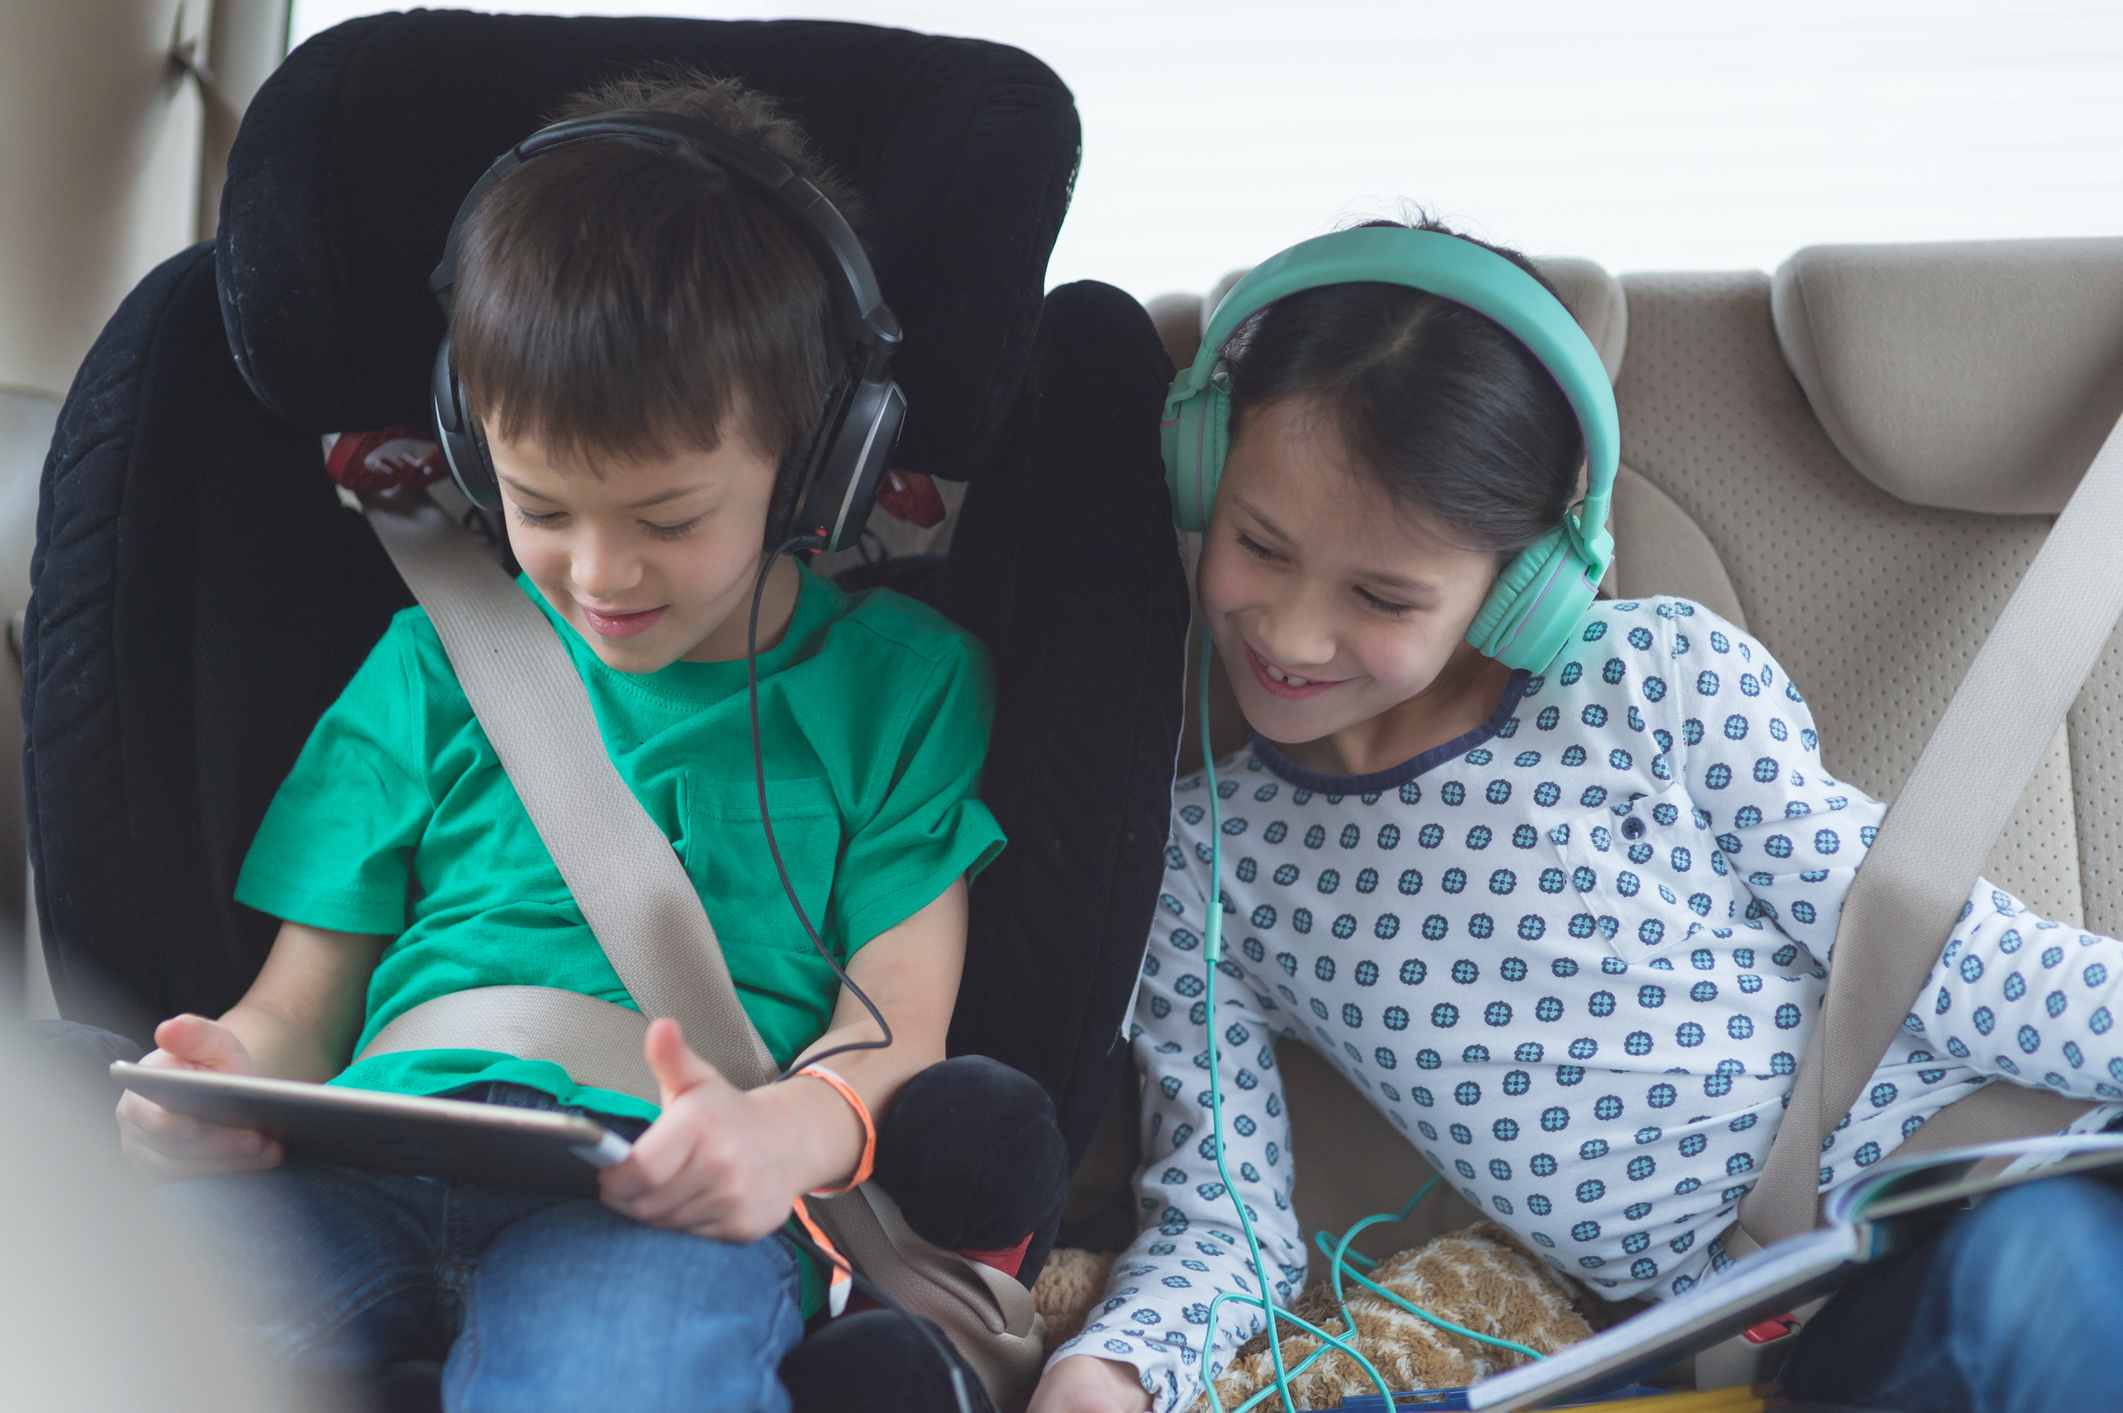 Children stream television to a tablet in a car.